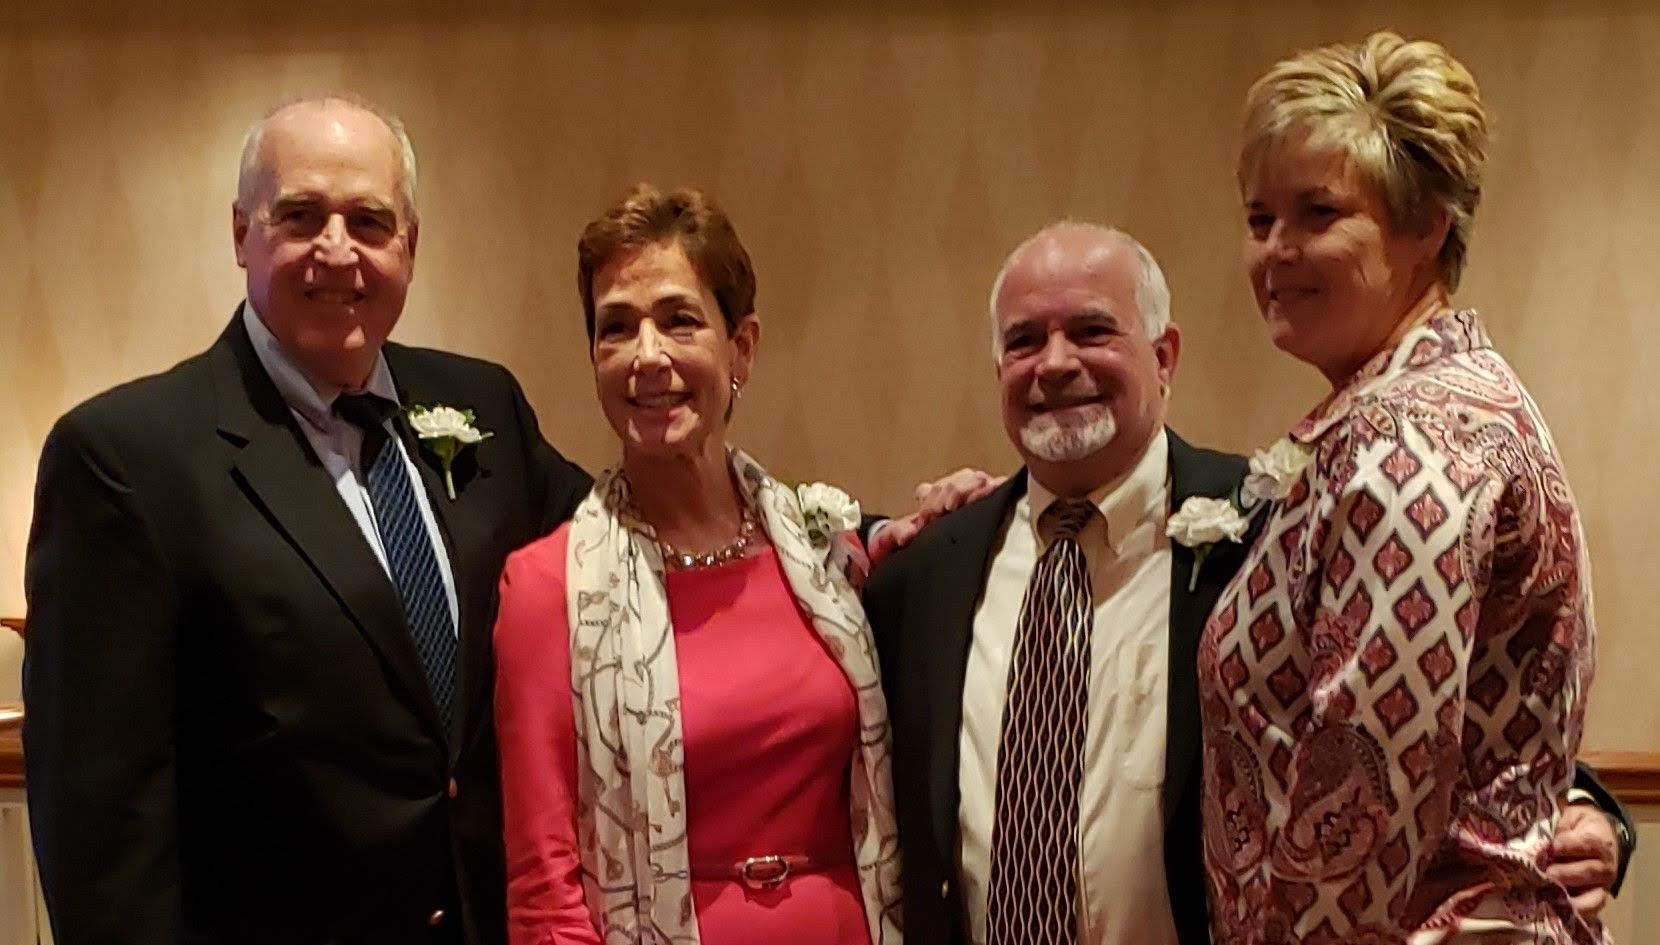 Honorees Jeff Spahr, Maria Marino, Steve Annunziato, and Missy Oman.  (photo by Anna Mastrolillo)